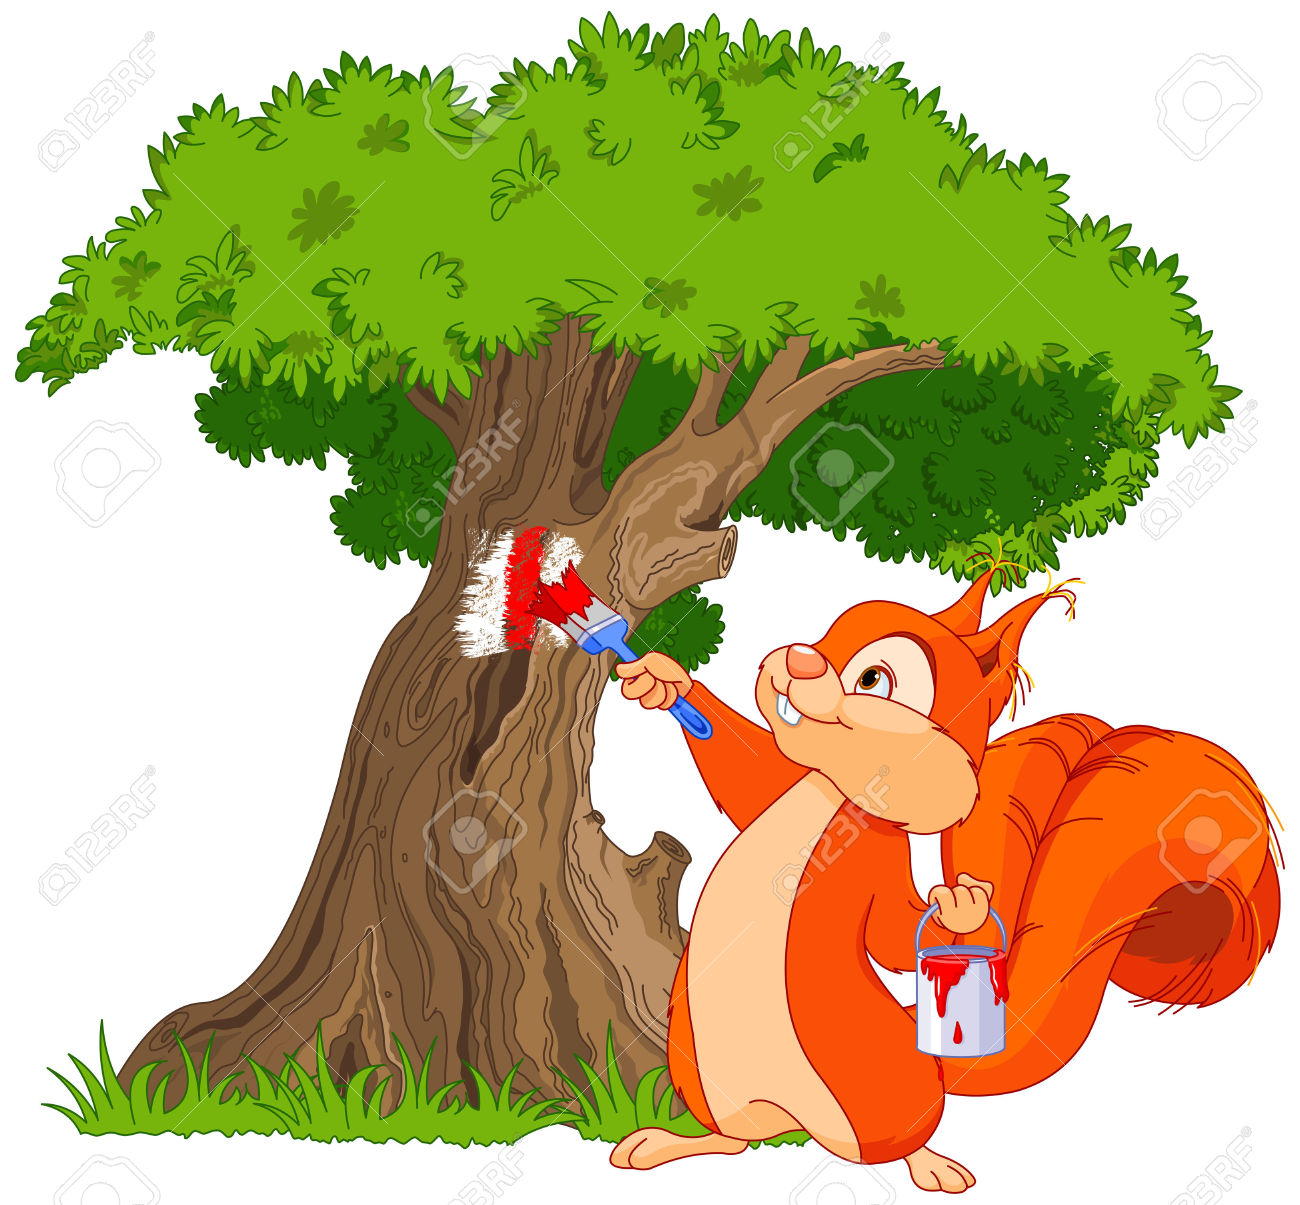 Tree clipart squirrel #8